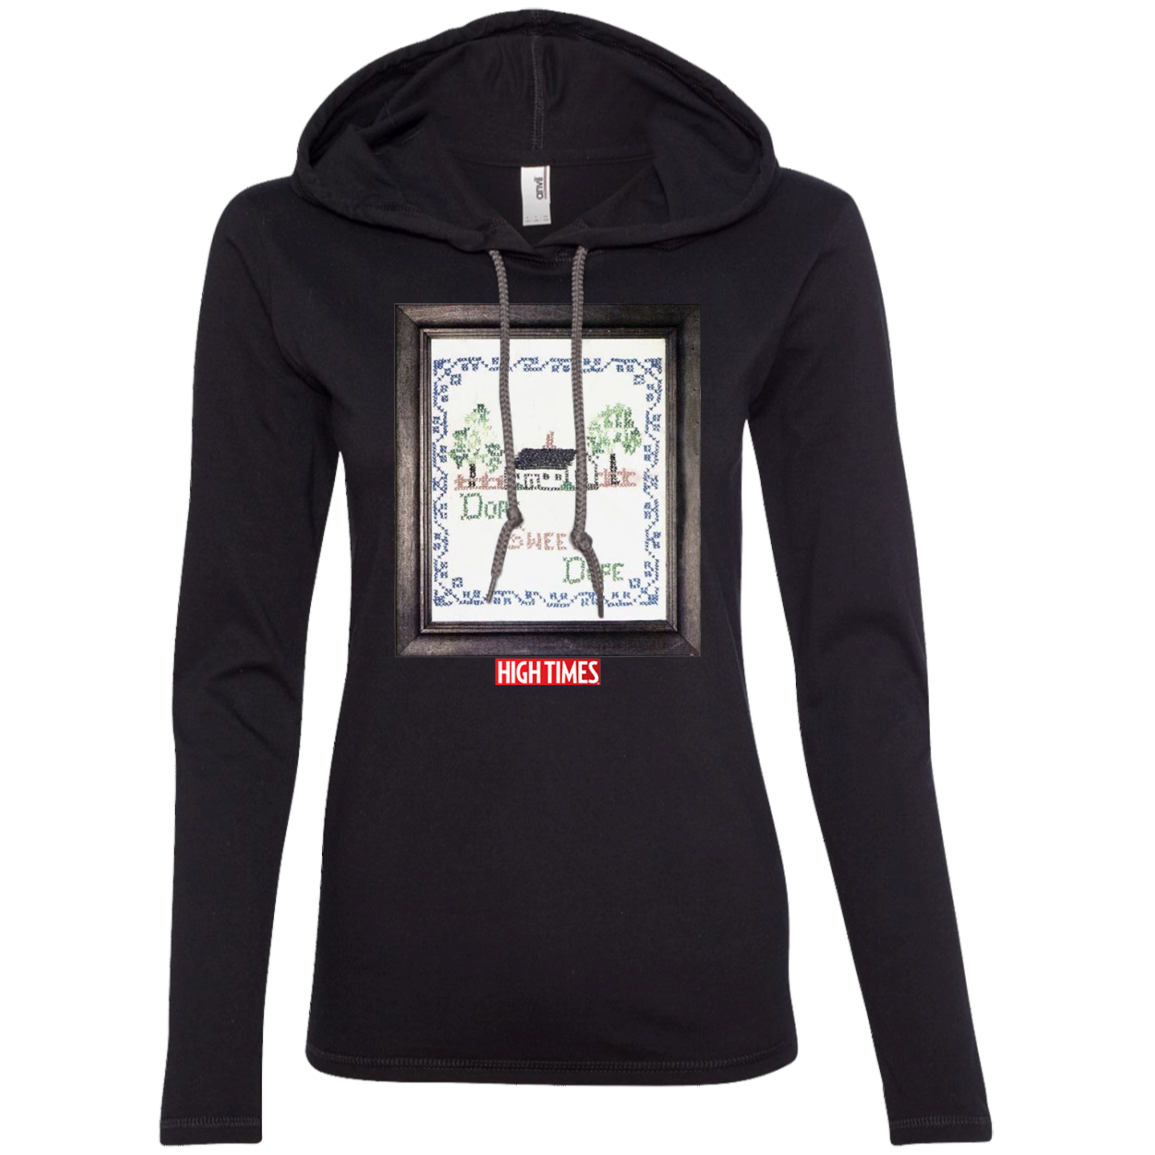 1984 High Times Art Women's Hoodie - Dope Sweet Dope